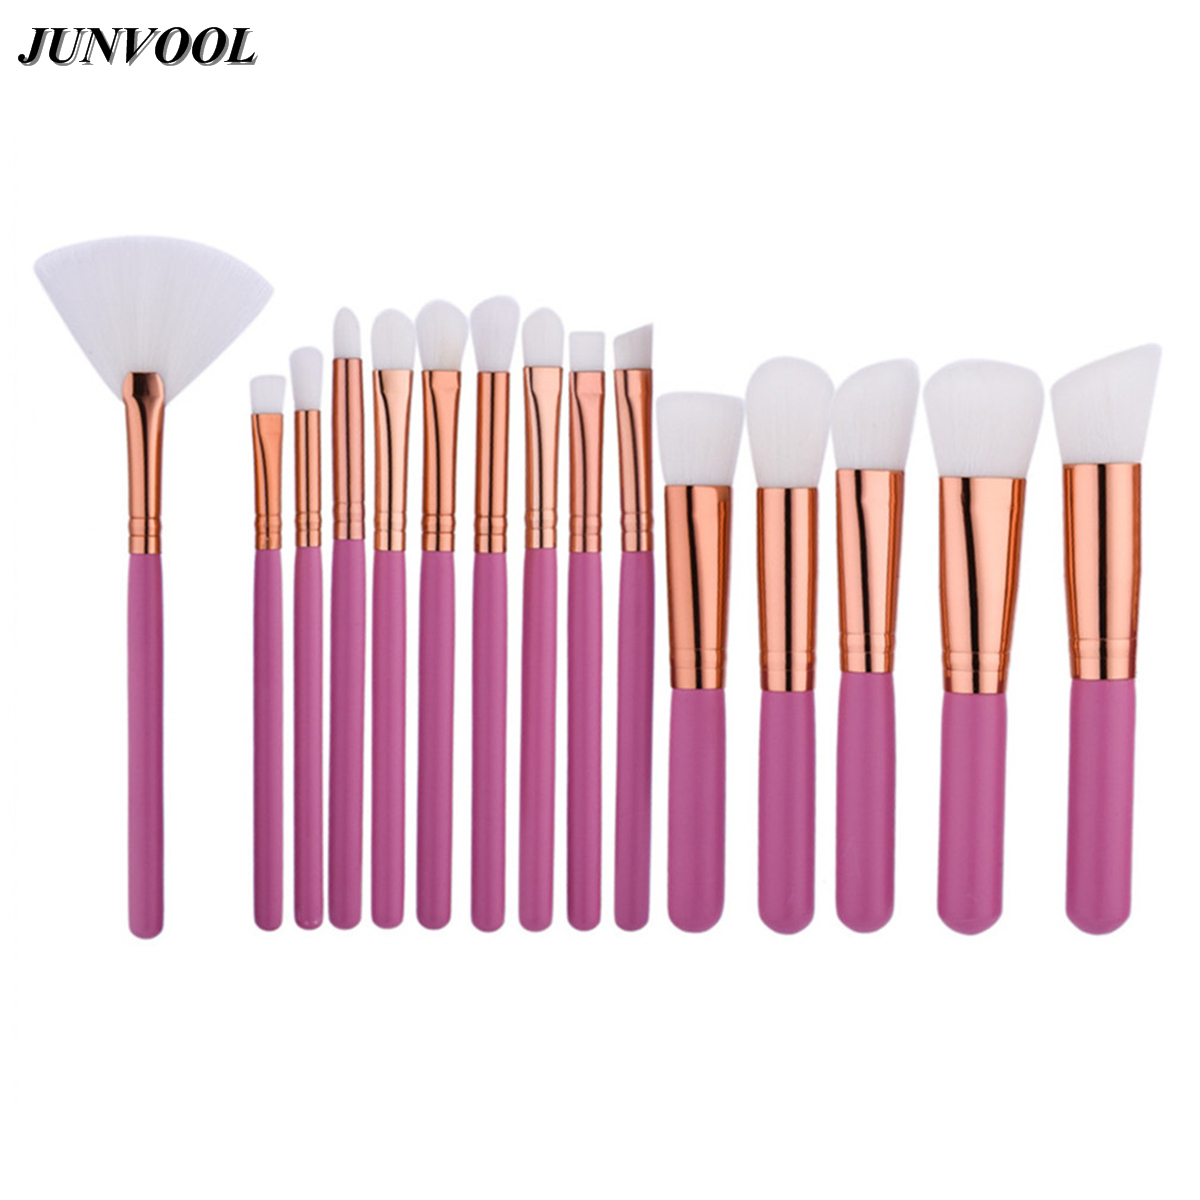 Pink Makeup Brushes Set 15PCS Professional Make Up Beauty Blush Foundation Contour Powder EyeShadow Cosmetic Fan Brush Rose Gold 15pcs set white rose gold professional cosmetic makeup brushes set make up brush tools kit eye liner eyeshadow brush kits